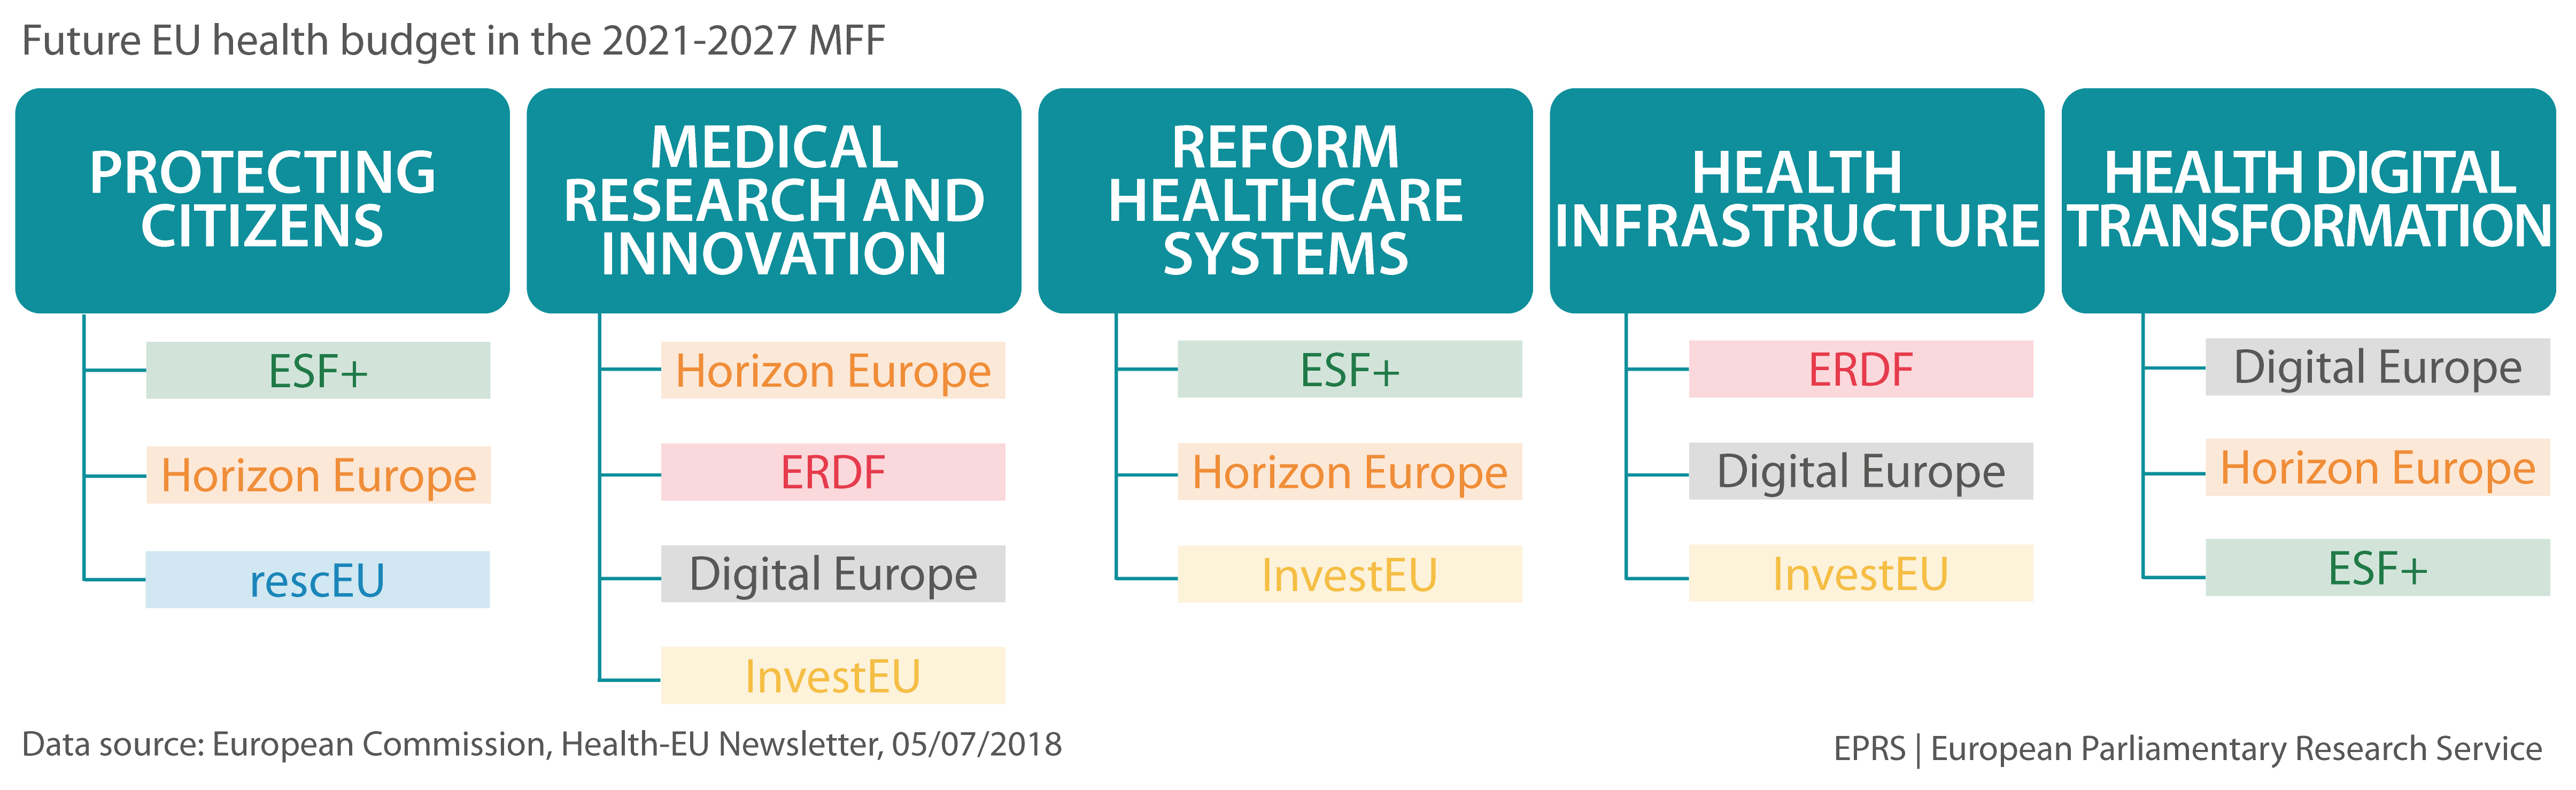 Figure 4 – Future EU health budget in the 2021-2027 MFF